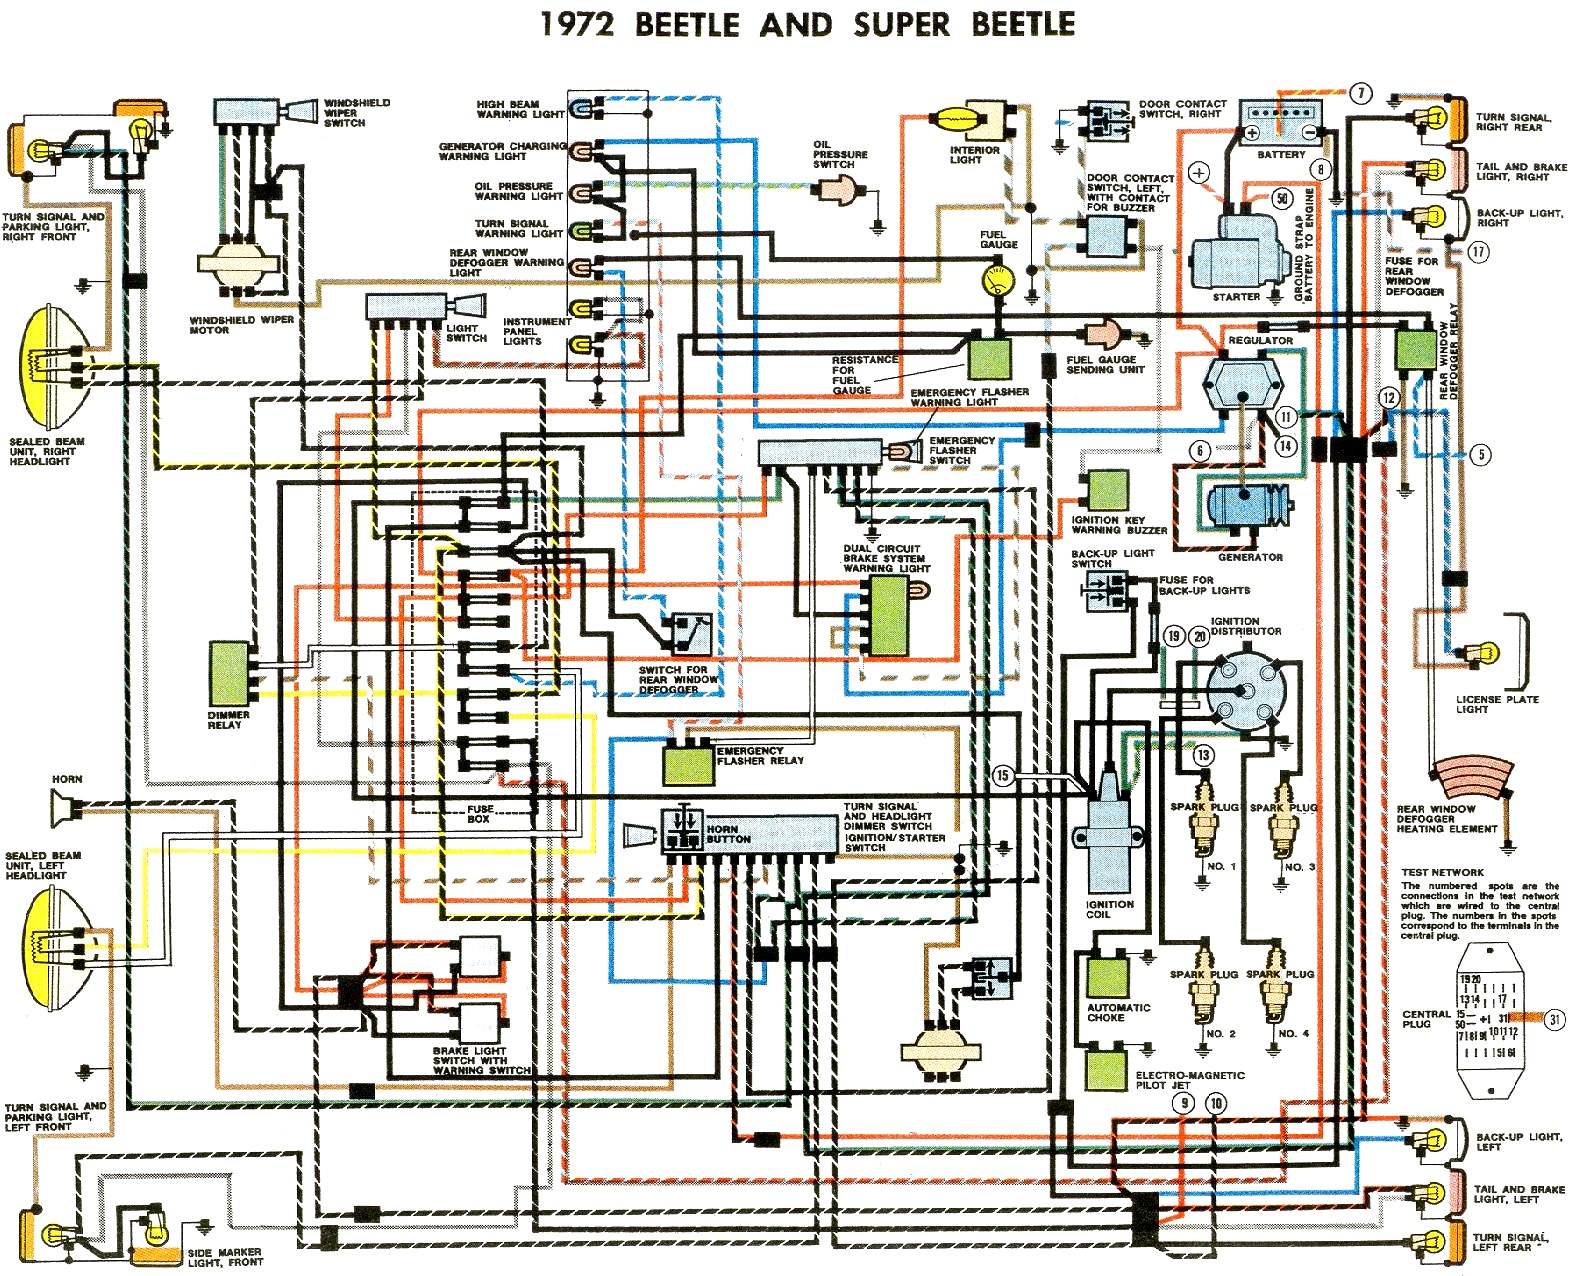 bug_72 vw golf 1 wiring diagram vw golf 1 wiring diagram \u2022 wiring 2002 vw cabrio wiring diagram at edmiracle.co